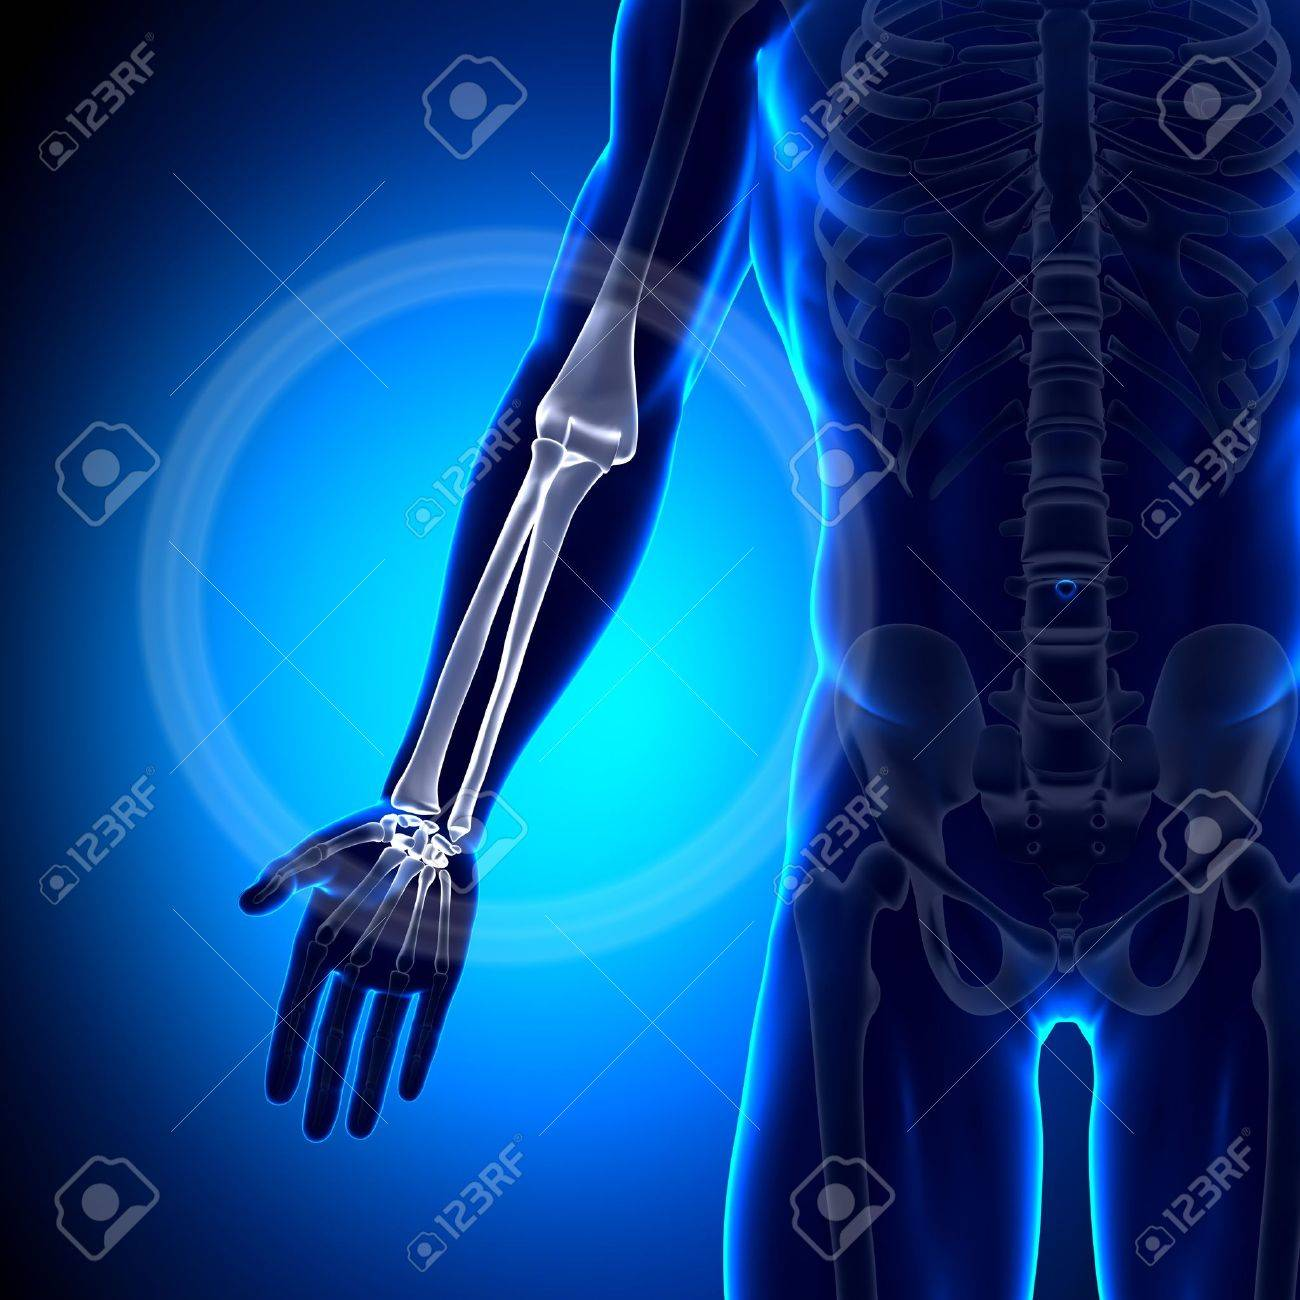 Radius Ulna Anatomy Bones Stock Photo, Picture And Royalty Free ...